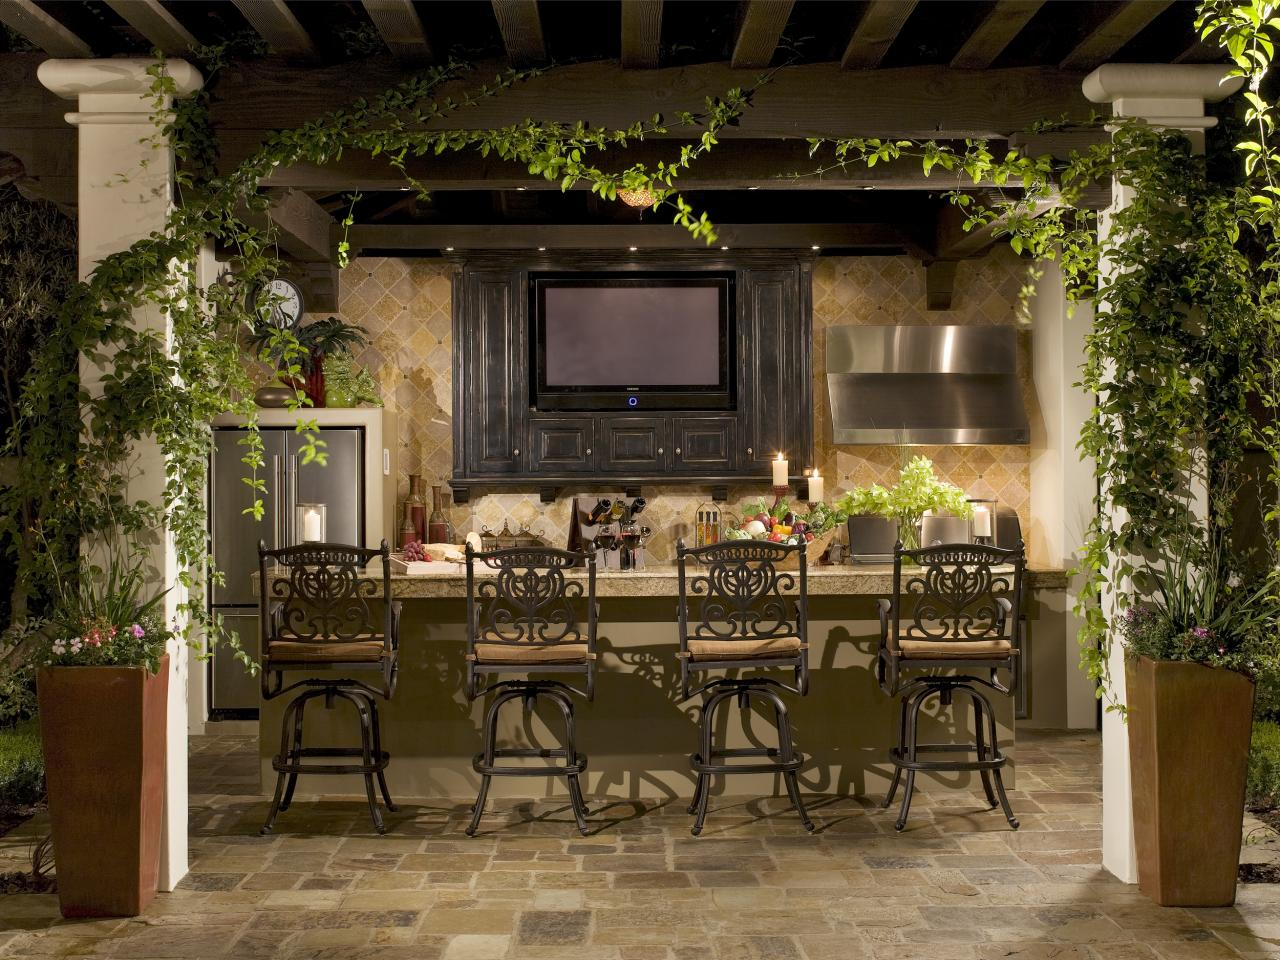 12 Fascinating Outdoor Bar Design Ideas on Bar Patio Ideas id=97741